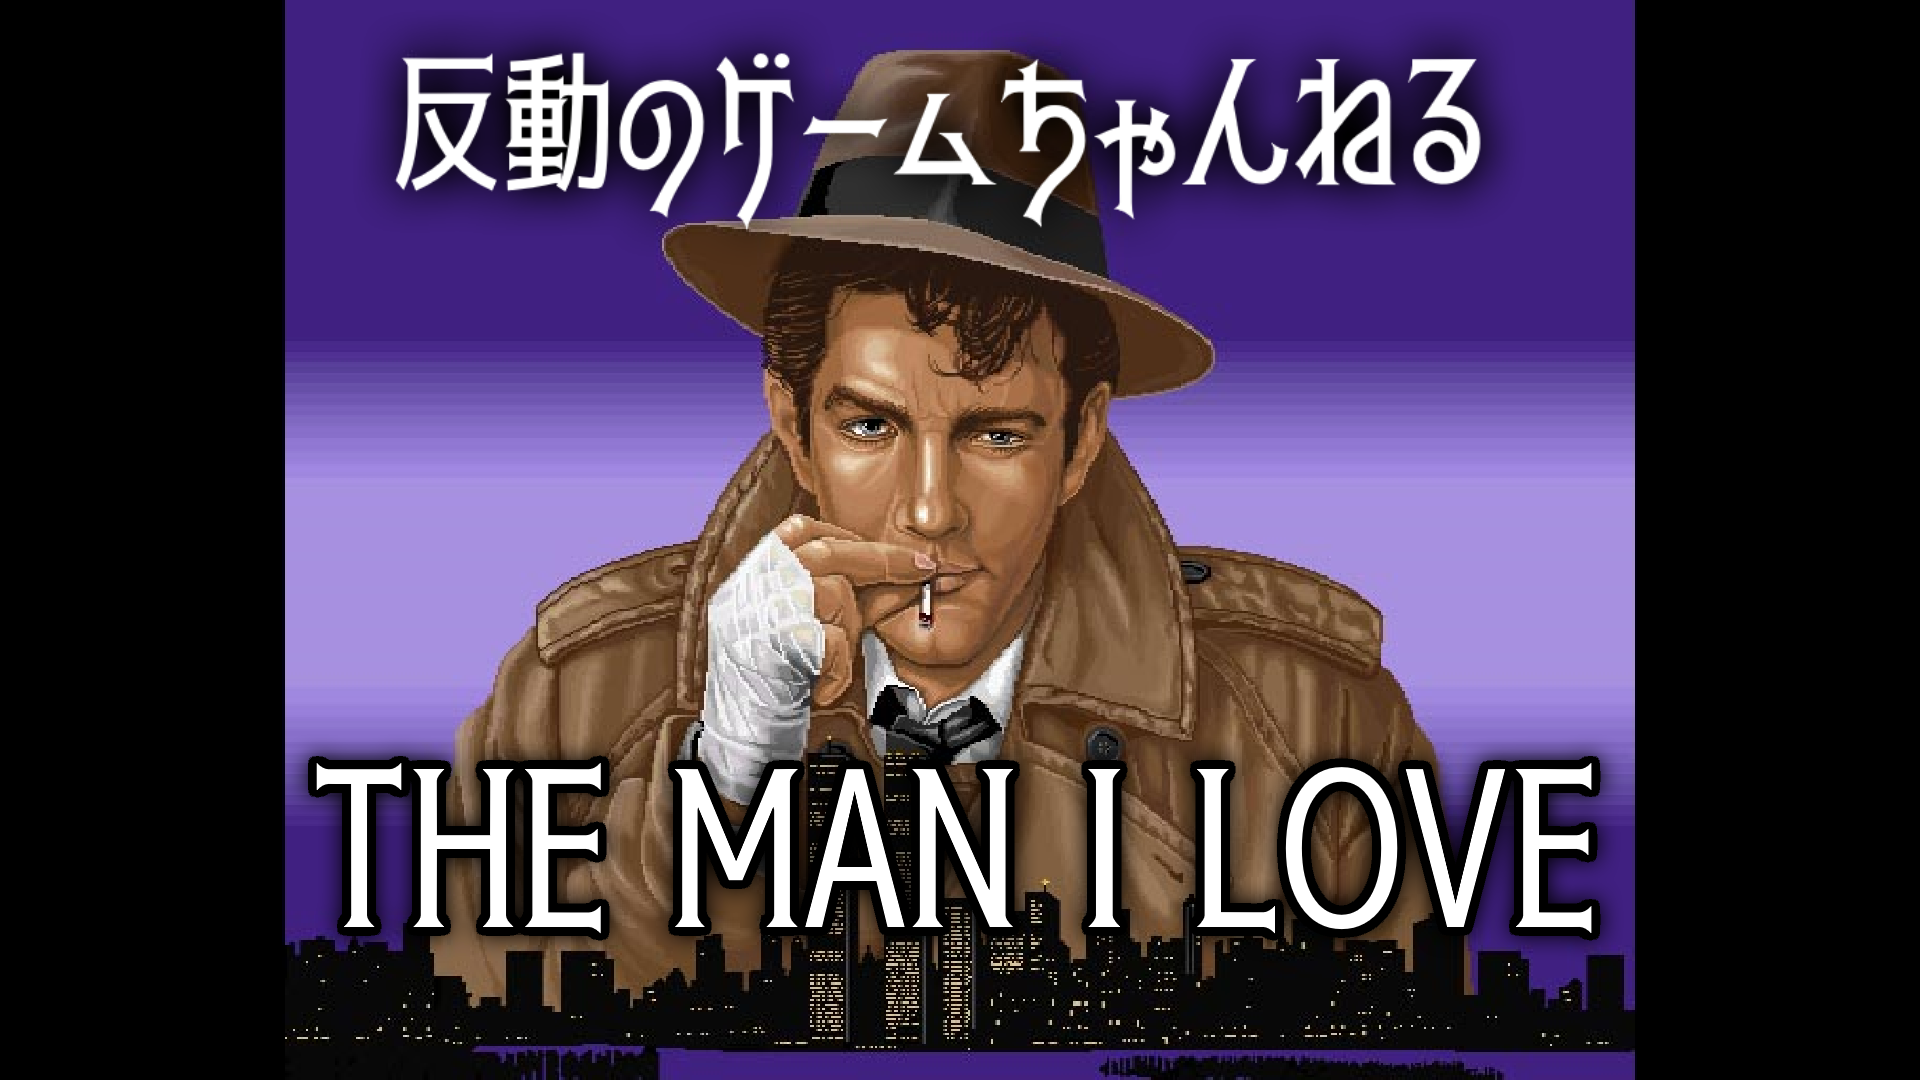 themaninlove.png